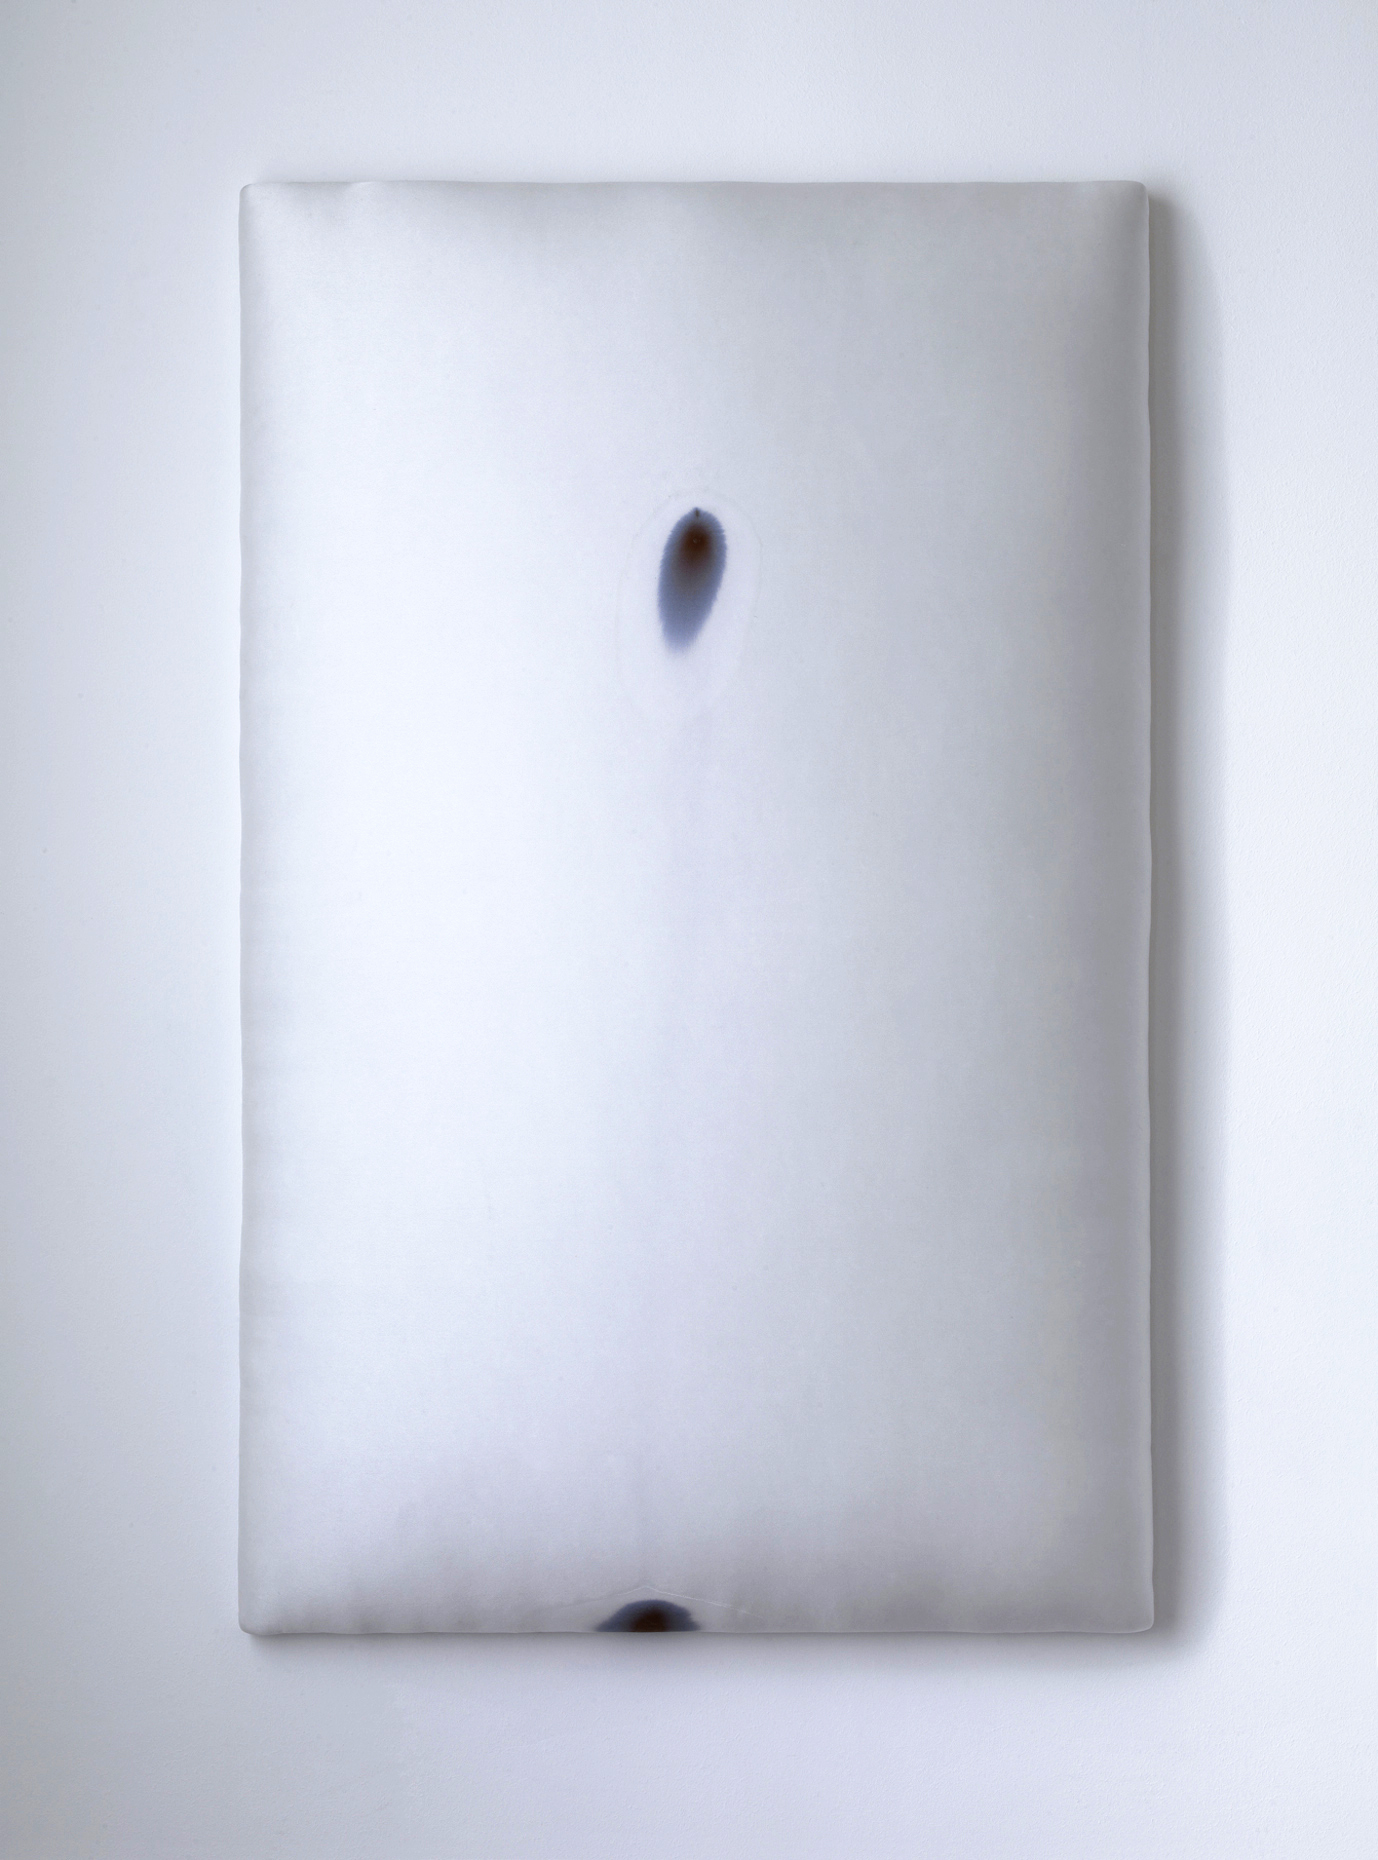 Tempo apertura flebo 7.12.12 ore 10.30 | Time Drip-feed Opening  7.12.12 at 10.30